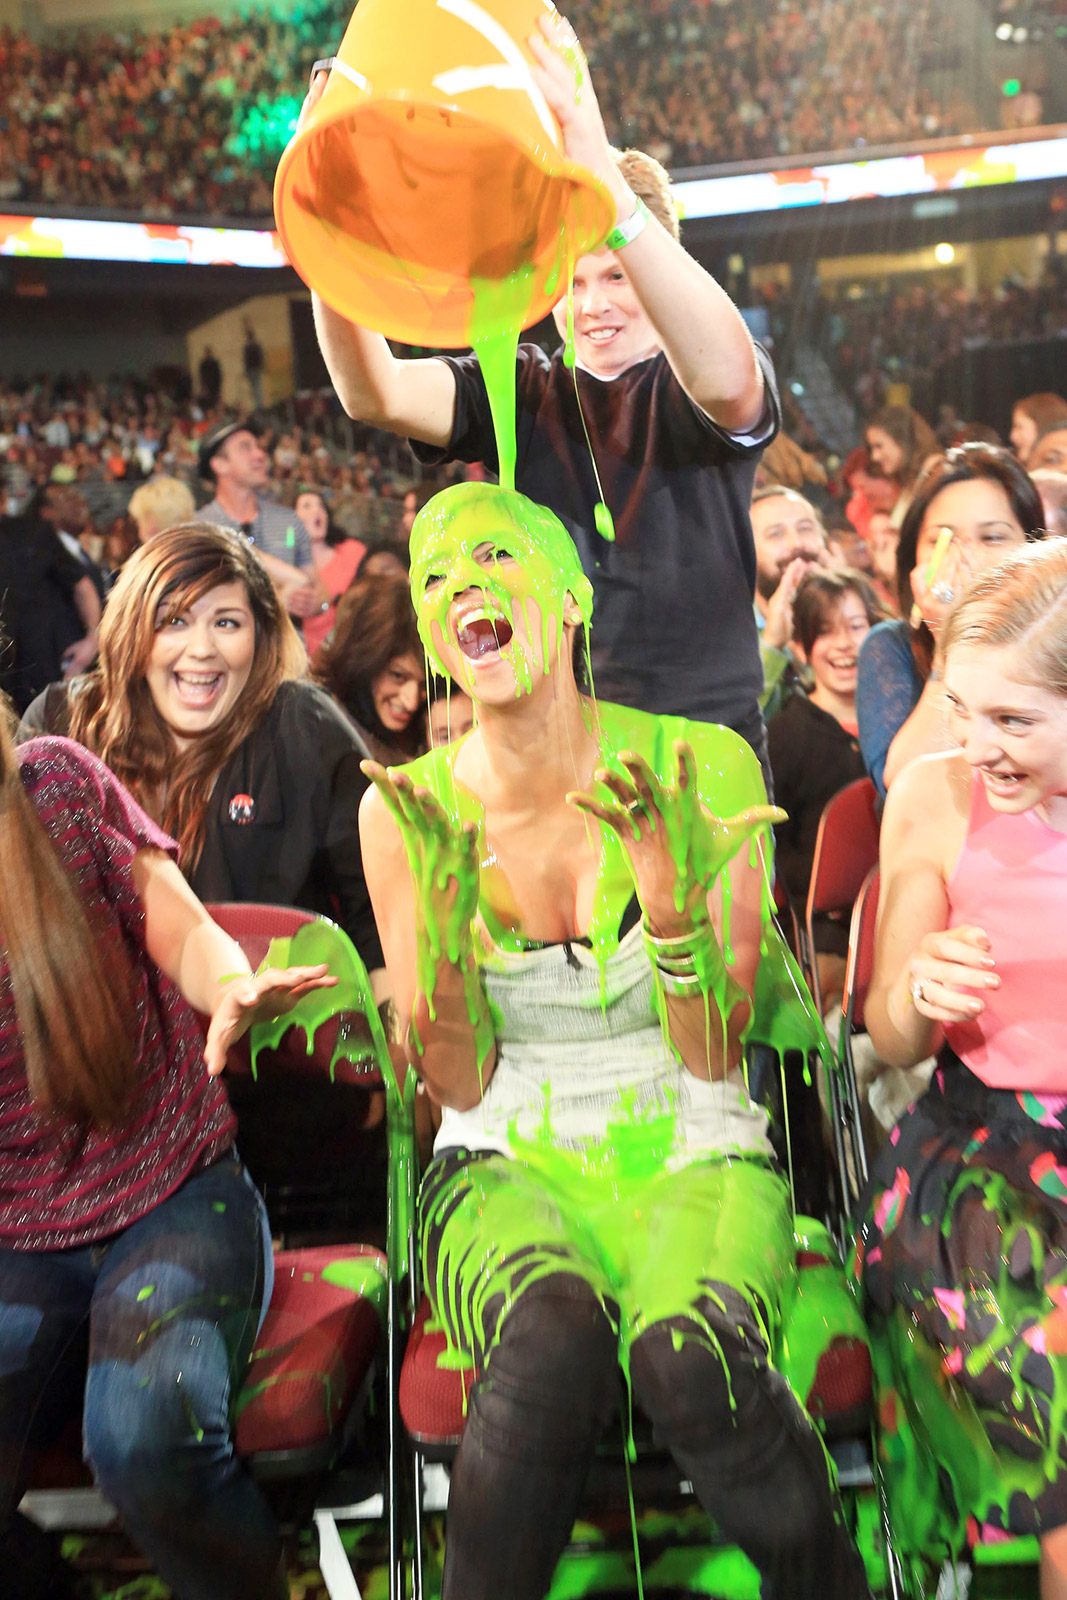 The Oscar winner was the first star to be slimed at the Galen Center on March 31, 2012. Chris Colfer , Justin Bieber , and host Will Smith were also given the goo treatment at various points throughout the show.